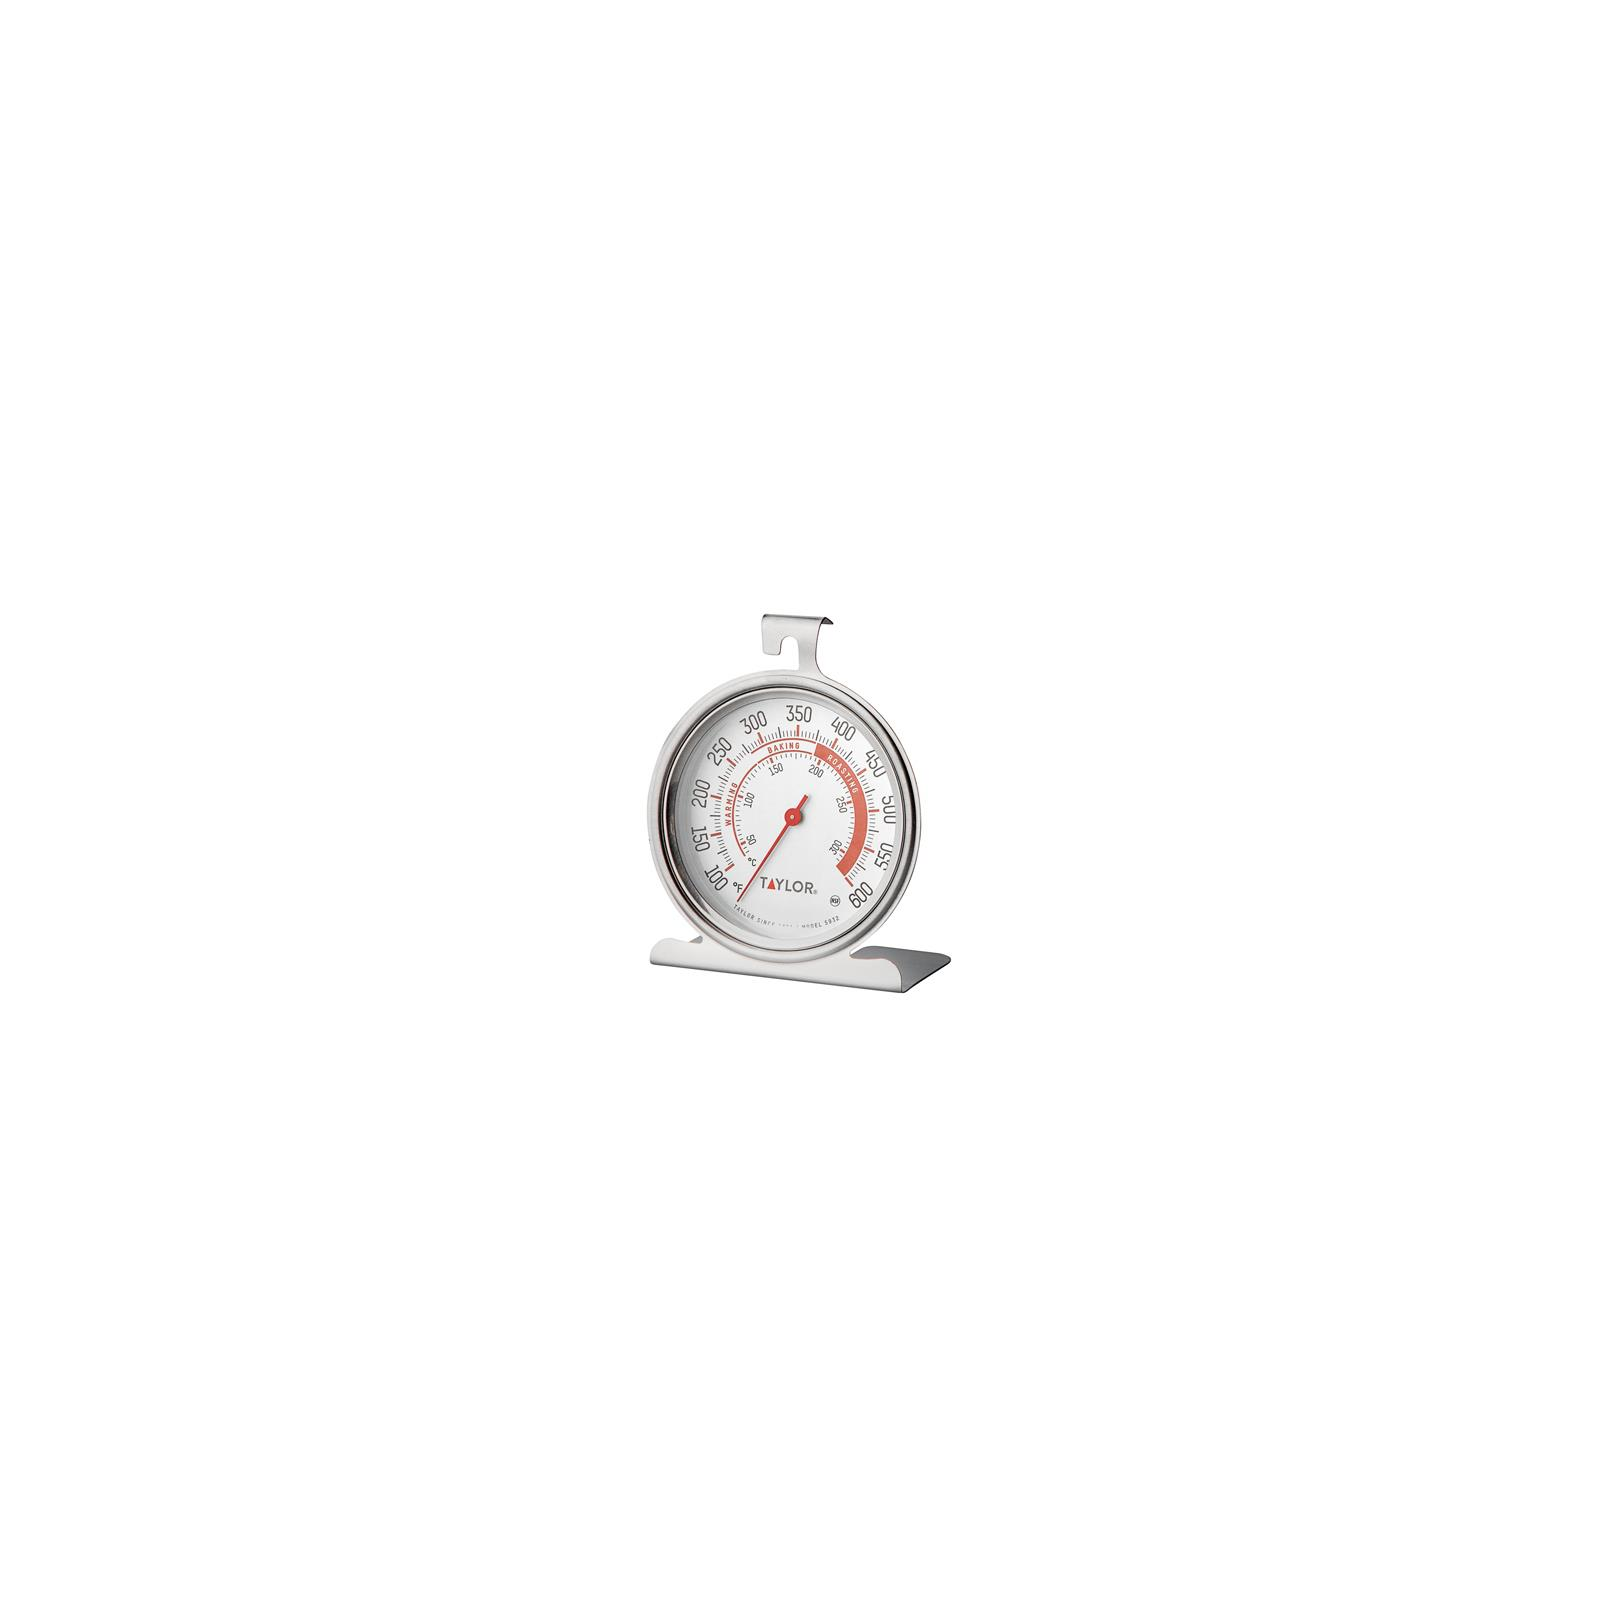 Taylor-Precision-Products-5932-Oven-Thermometer-3-Inch-Round thumbnail 2